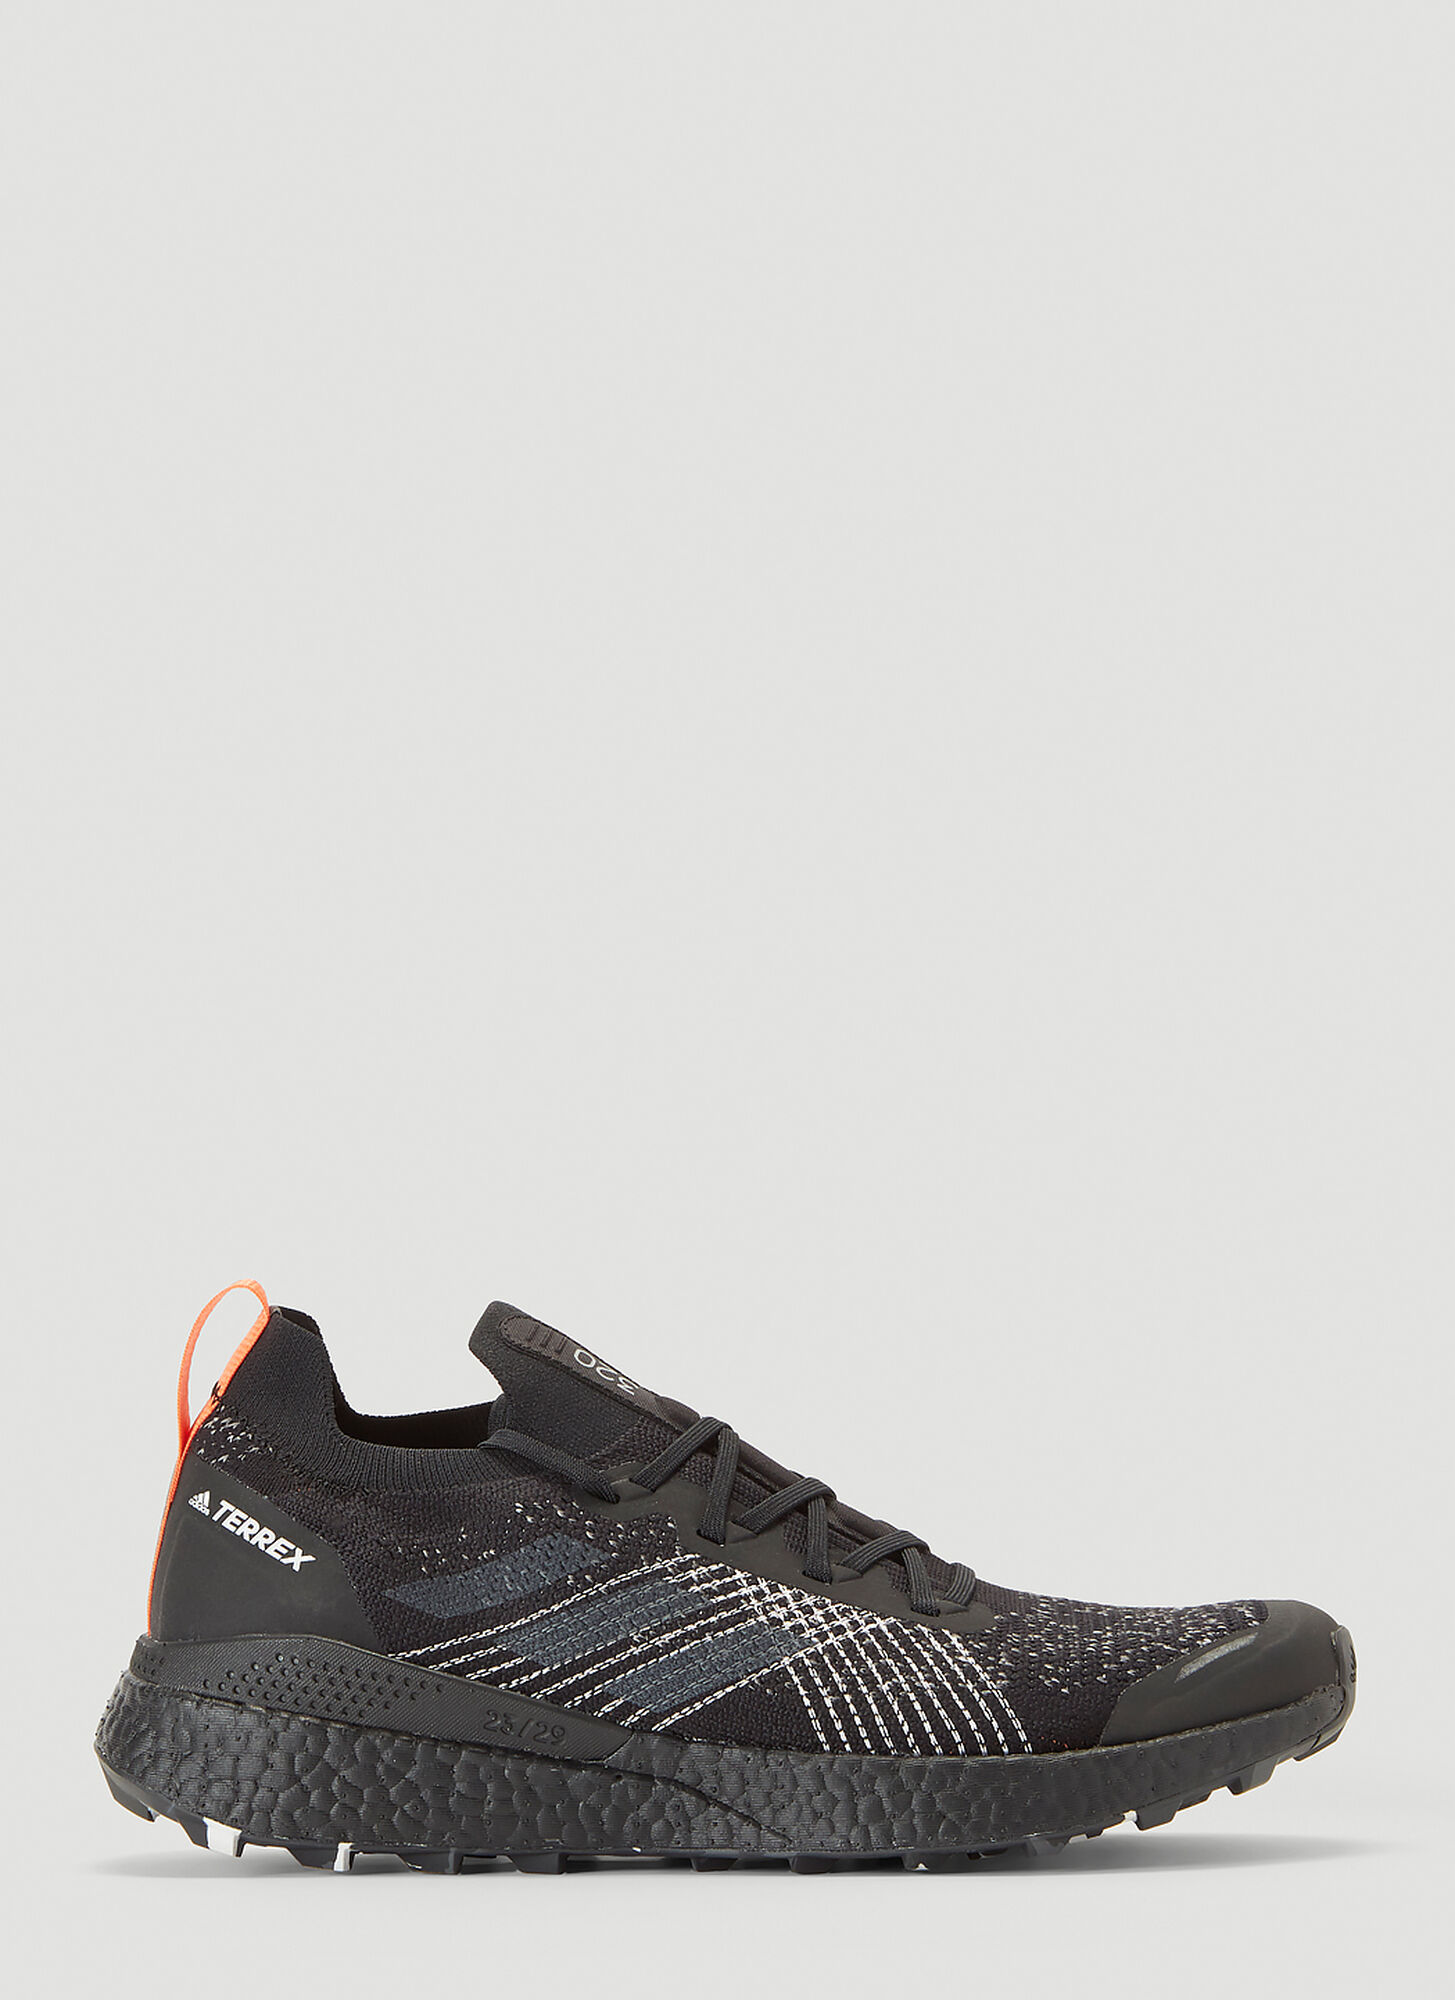 adidas Terrex Two Ultra Parley Sneakers in Black size UK - 11